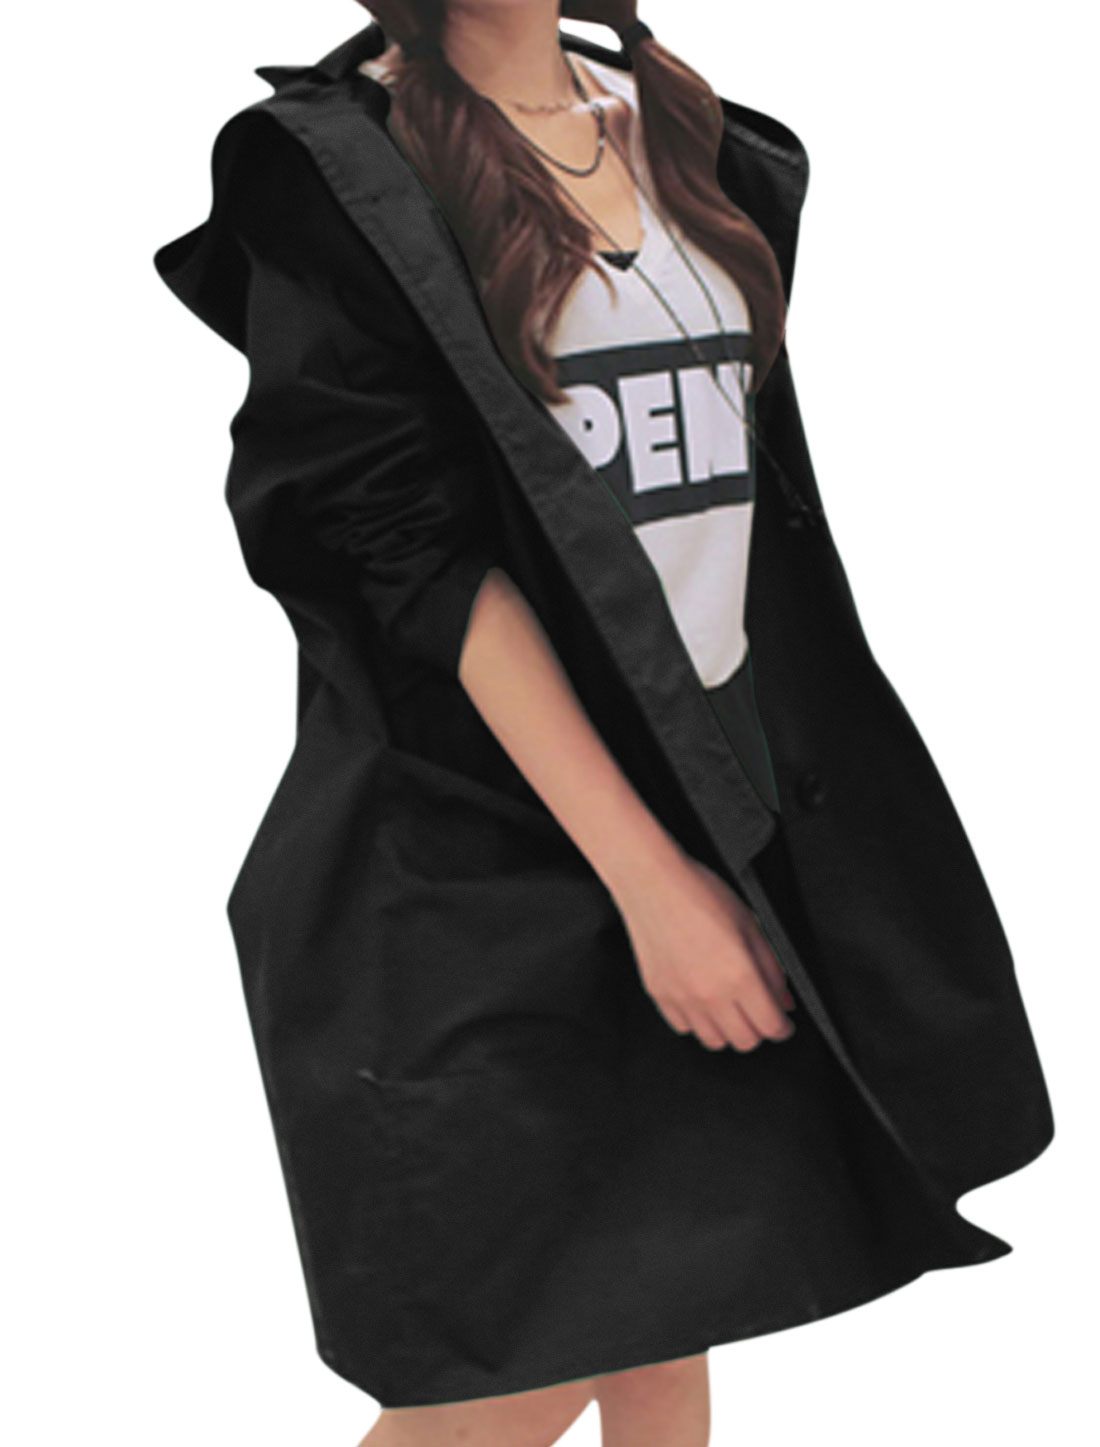 Ladies Black Long Sleeves Single Breasted Front Pockets Trench Jacket S